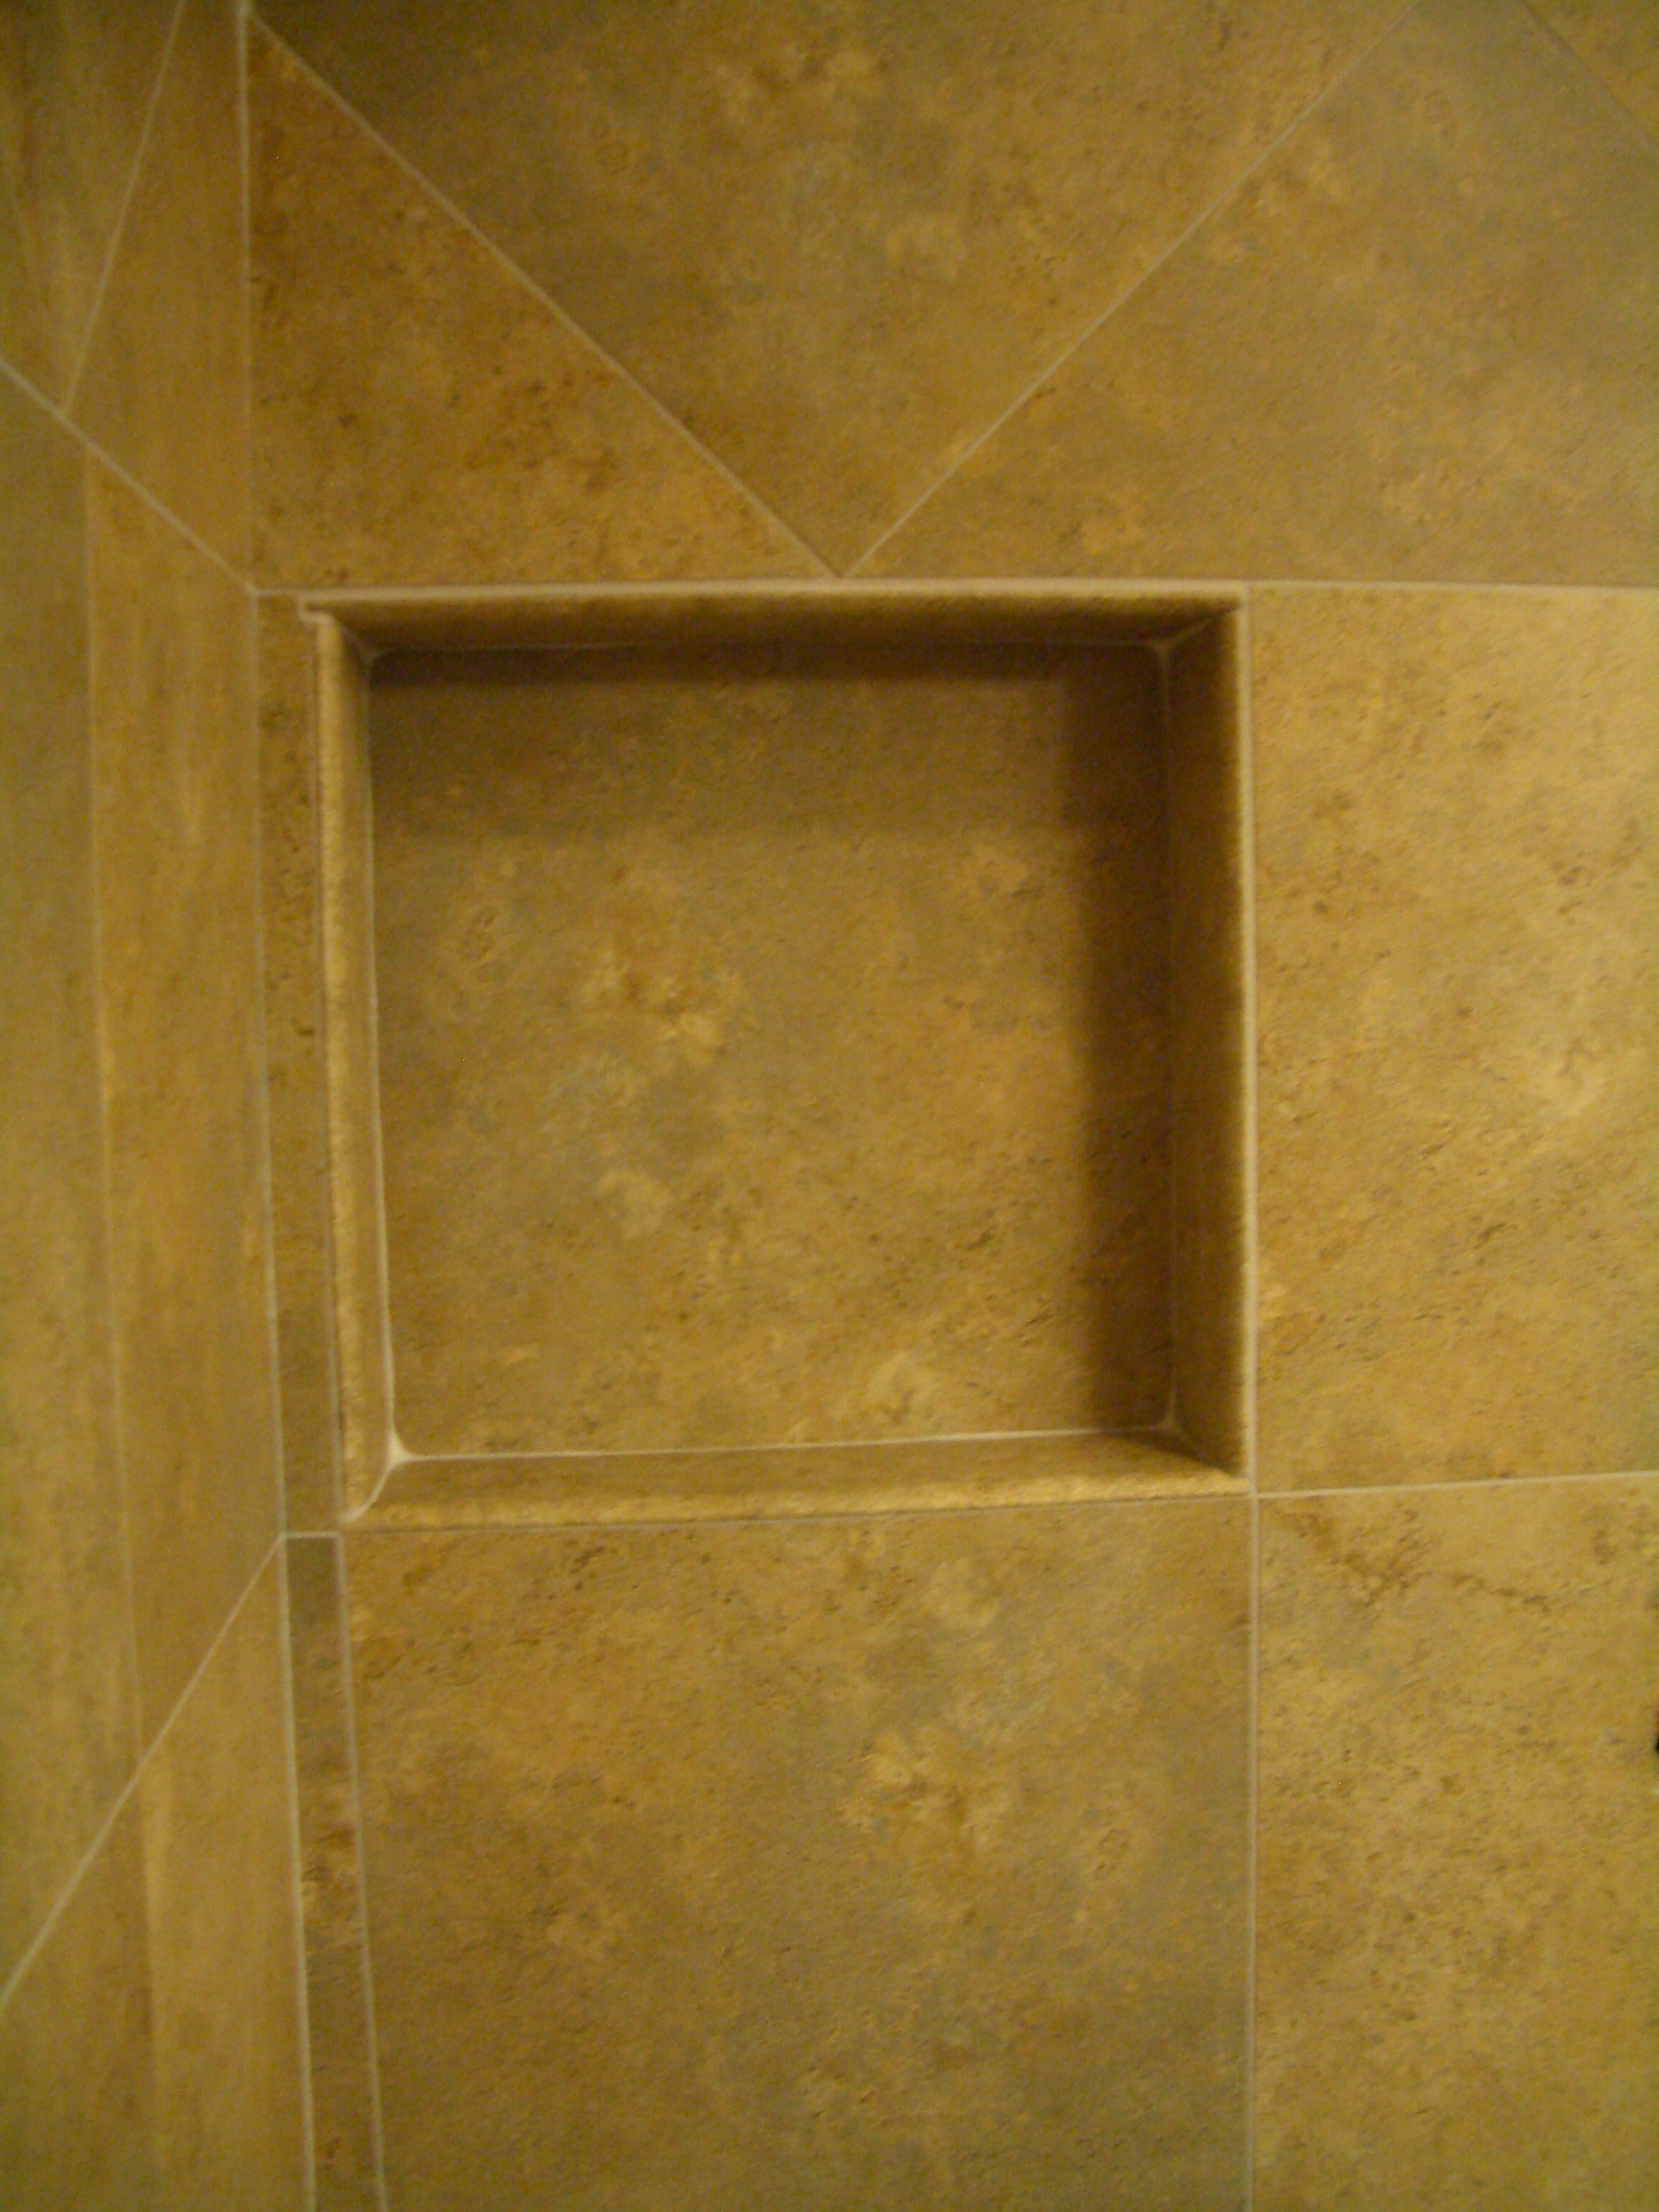 How to Build a Niche for your Shower – Part 4